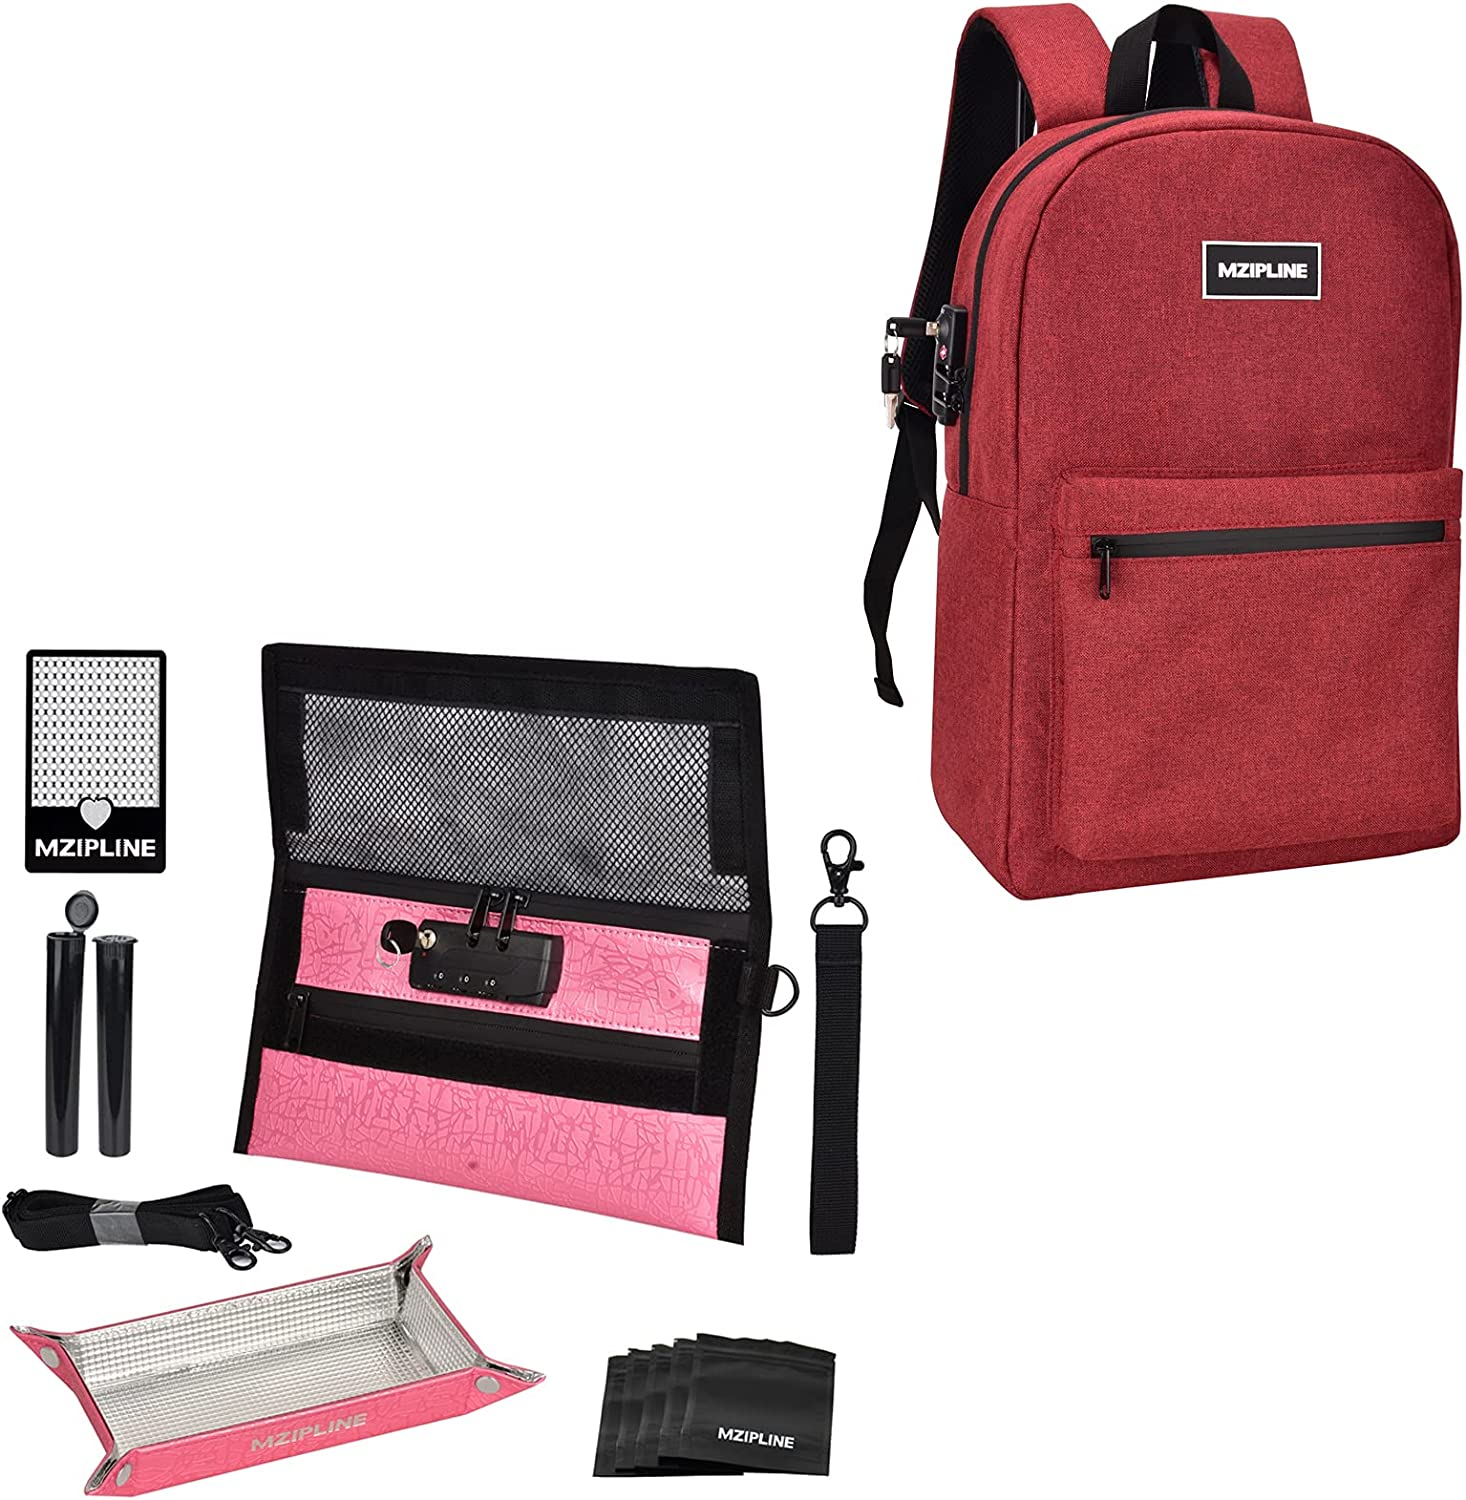 Lock Smell Proof Backpack Bag Kits ! Super beauty product restock quality top! Small Easy-to-use Bundle